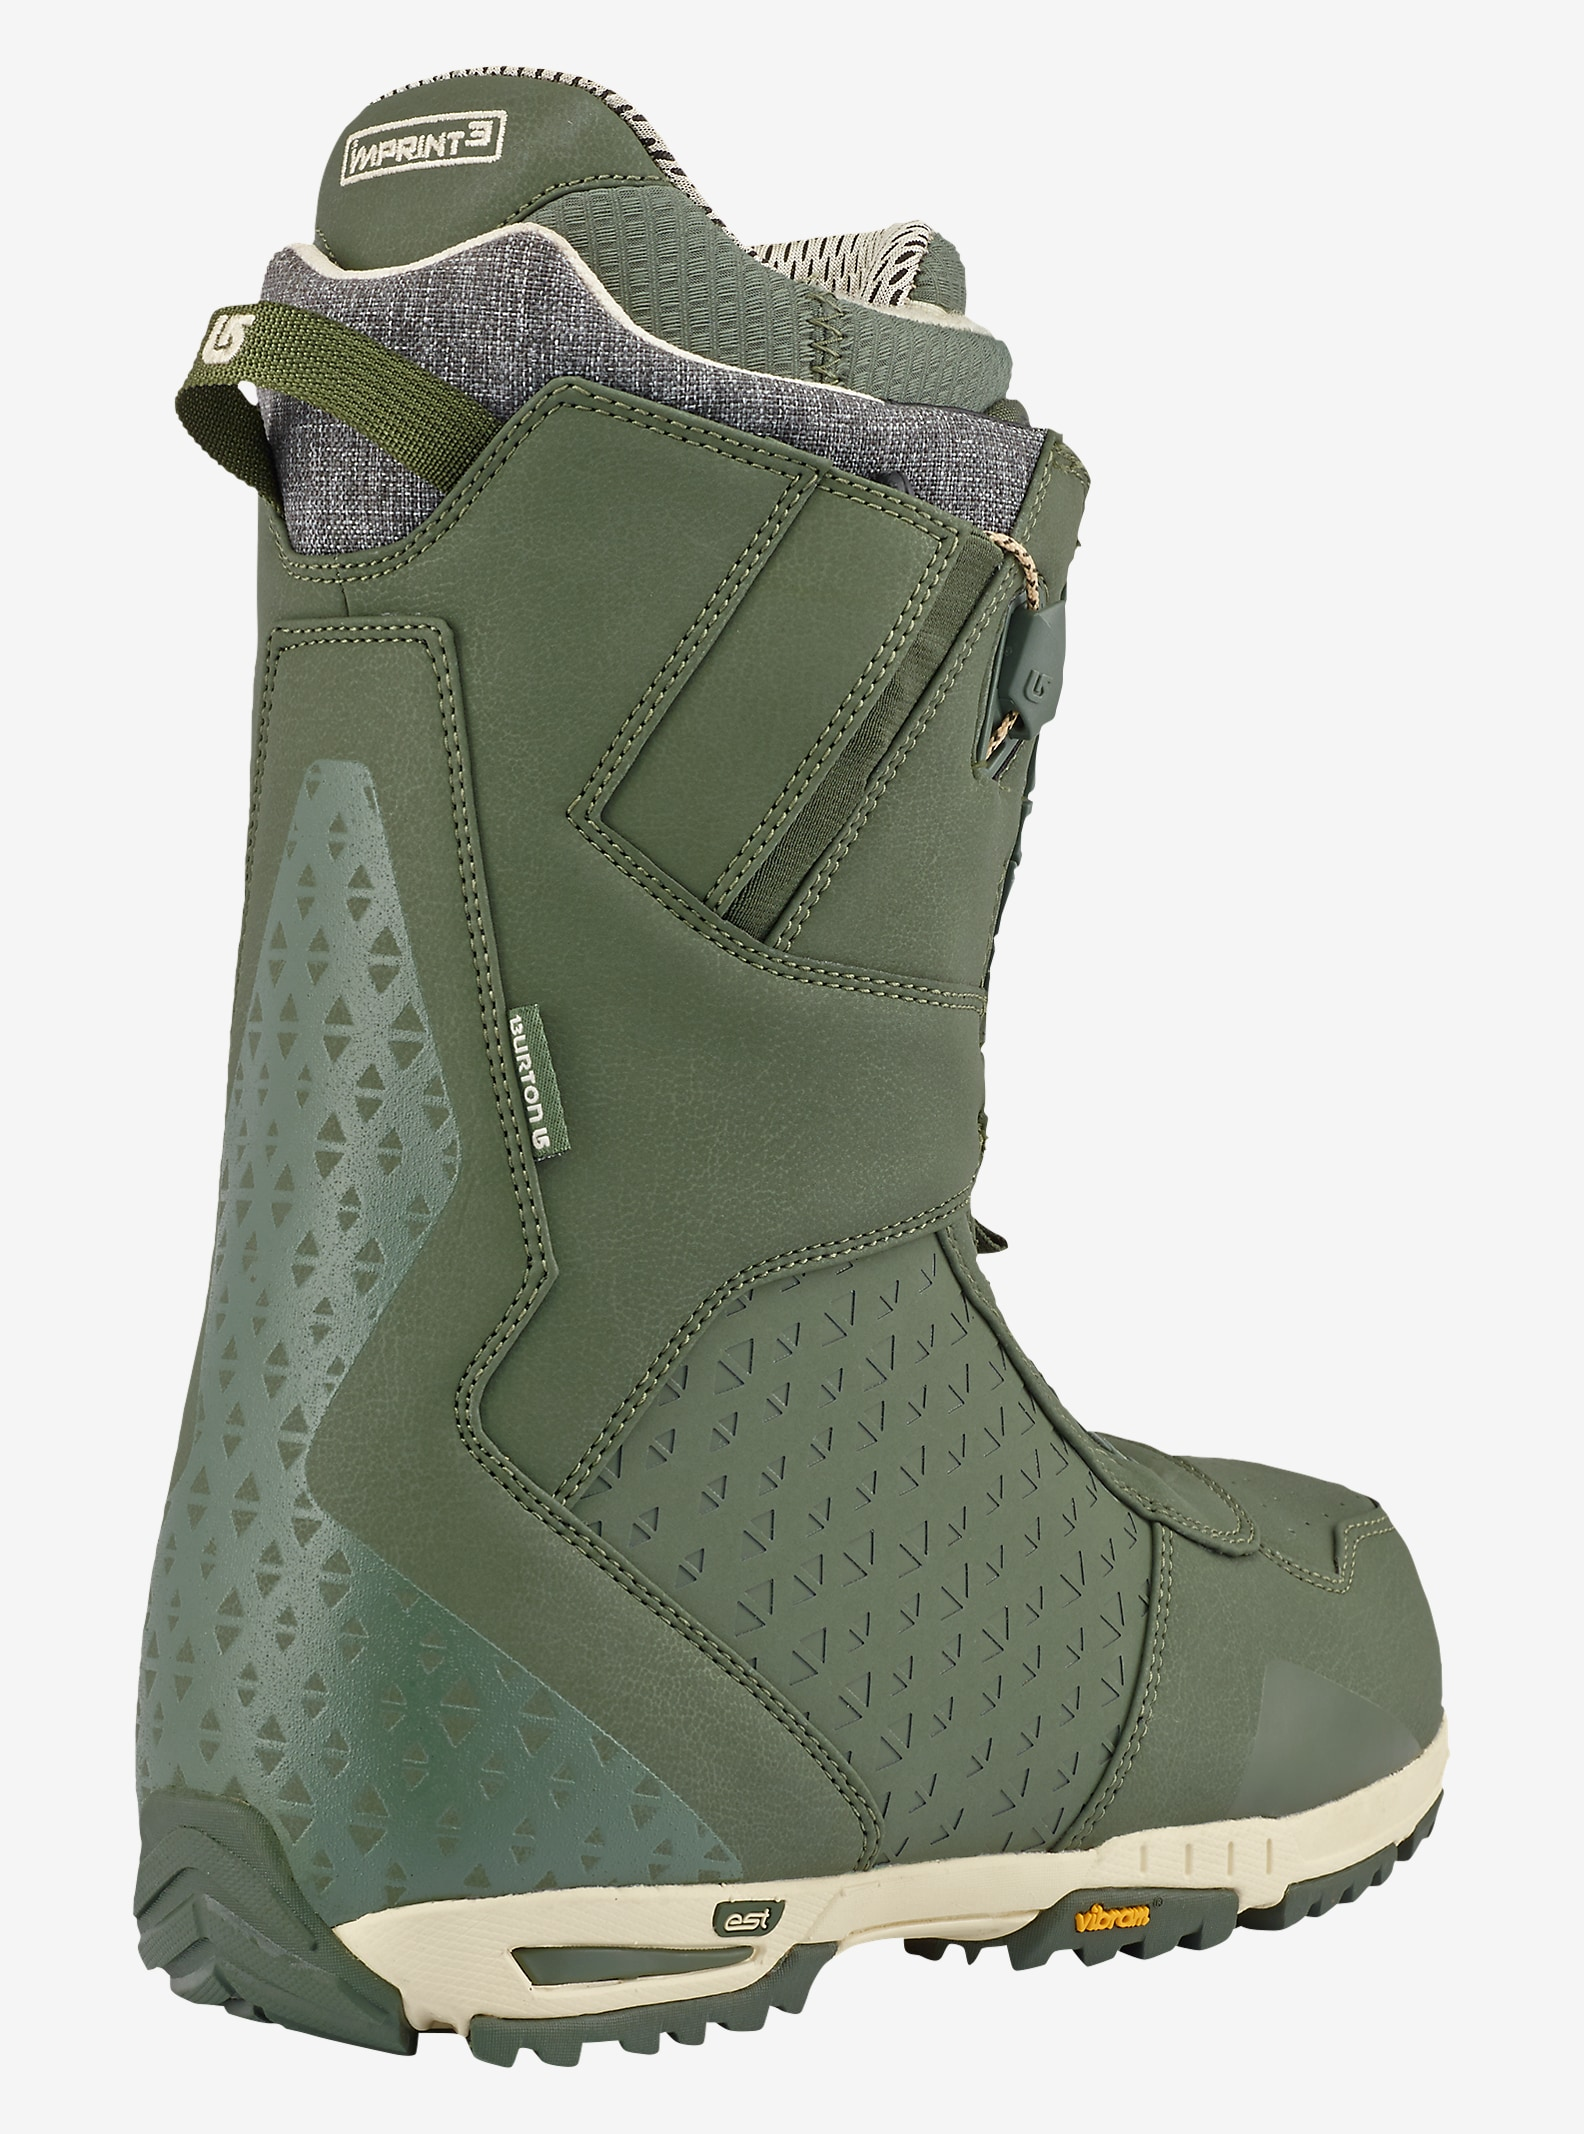 Burton Imperial Snowboard Boot shown in Green